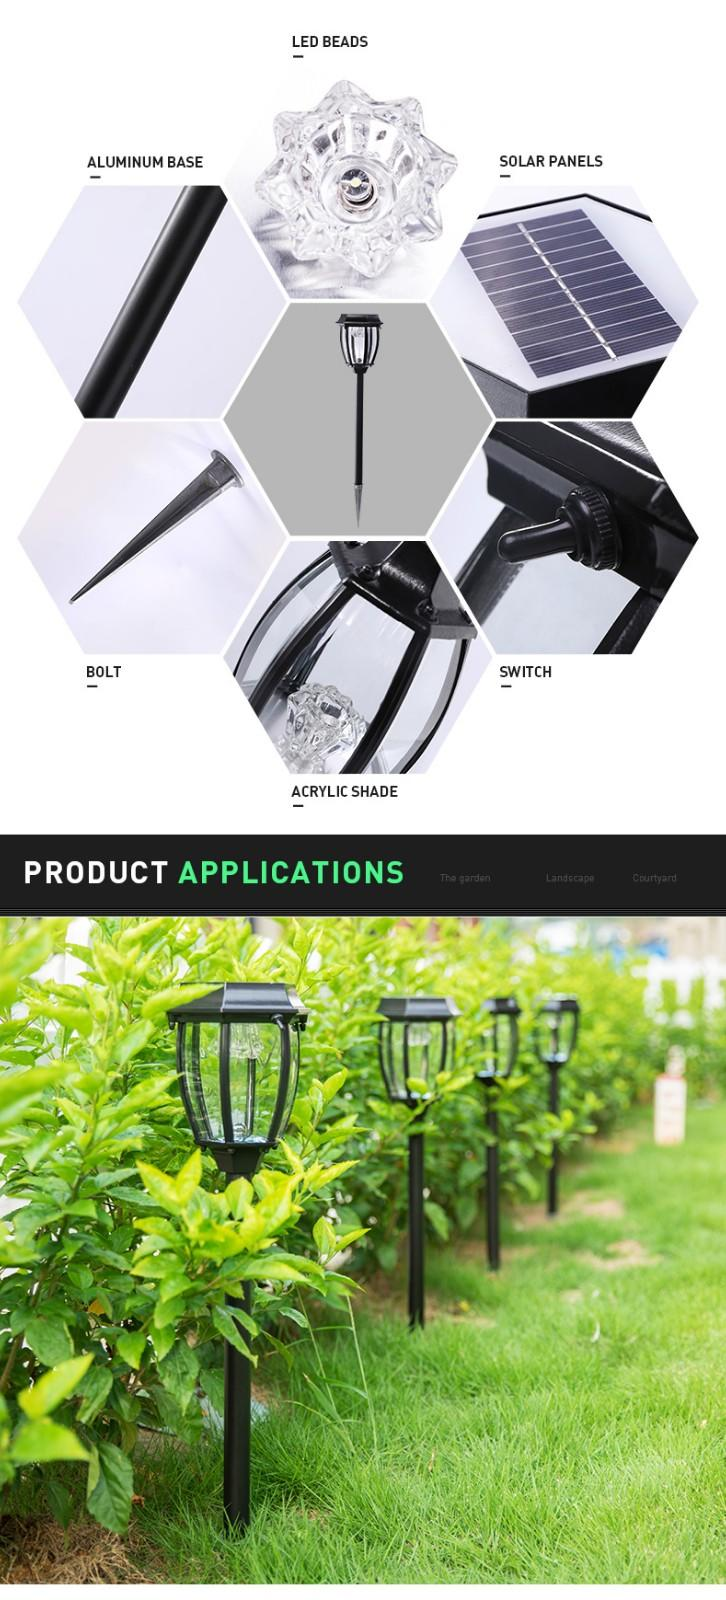 Pat Hei Gate Hardware small solar bulb looking for buyer for sale